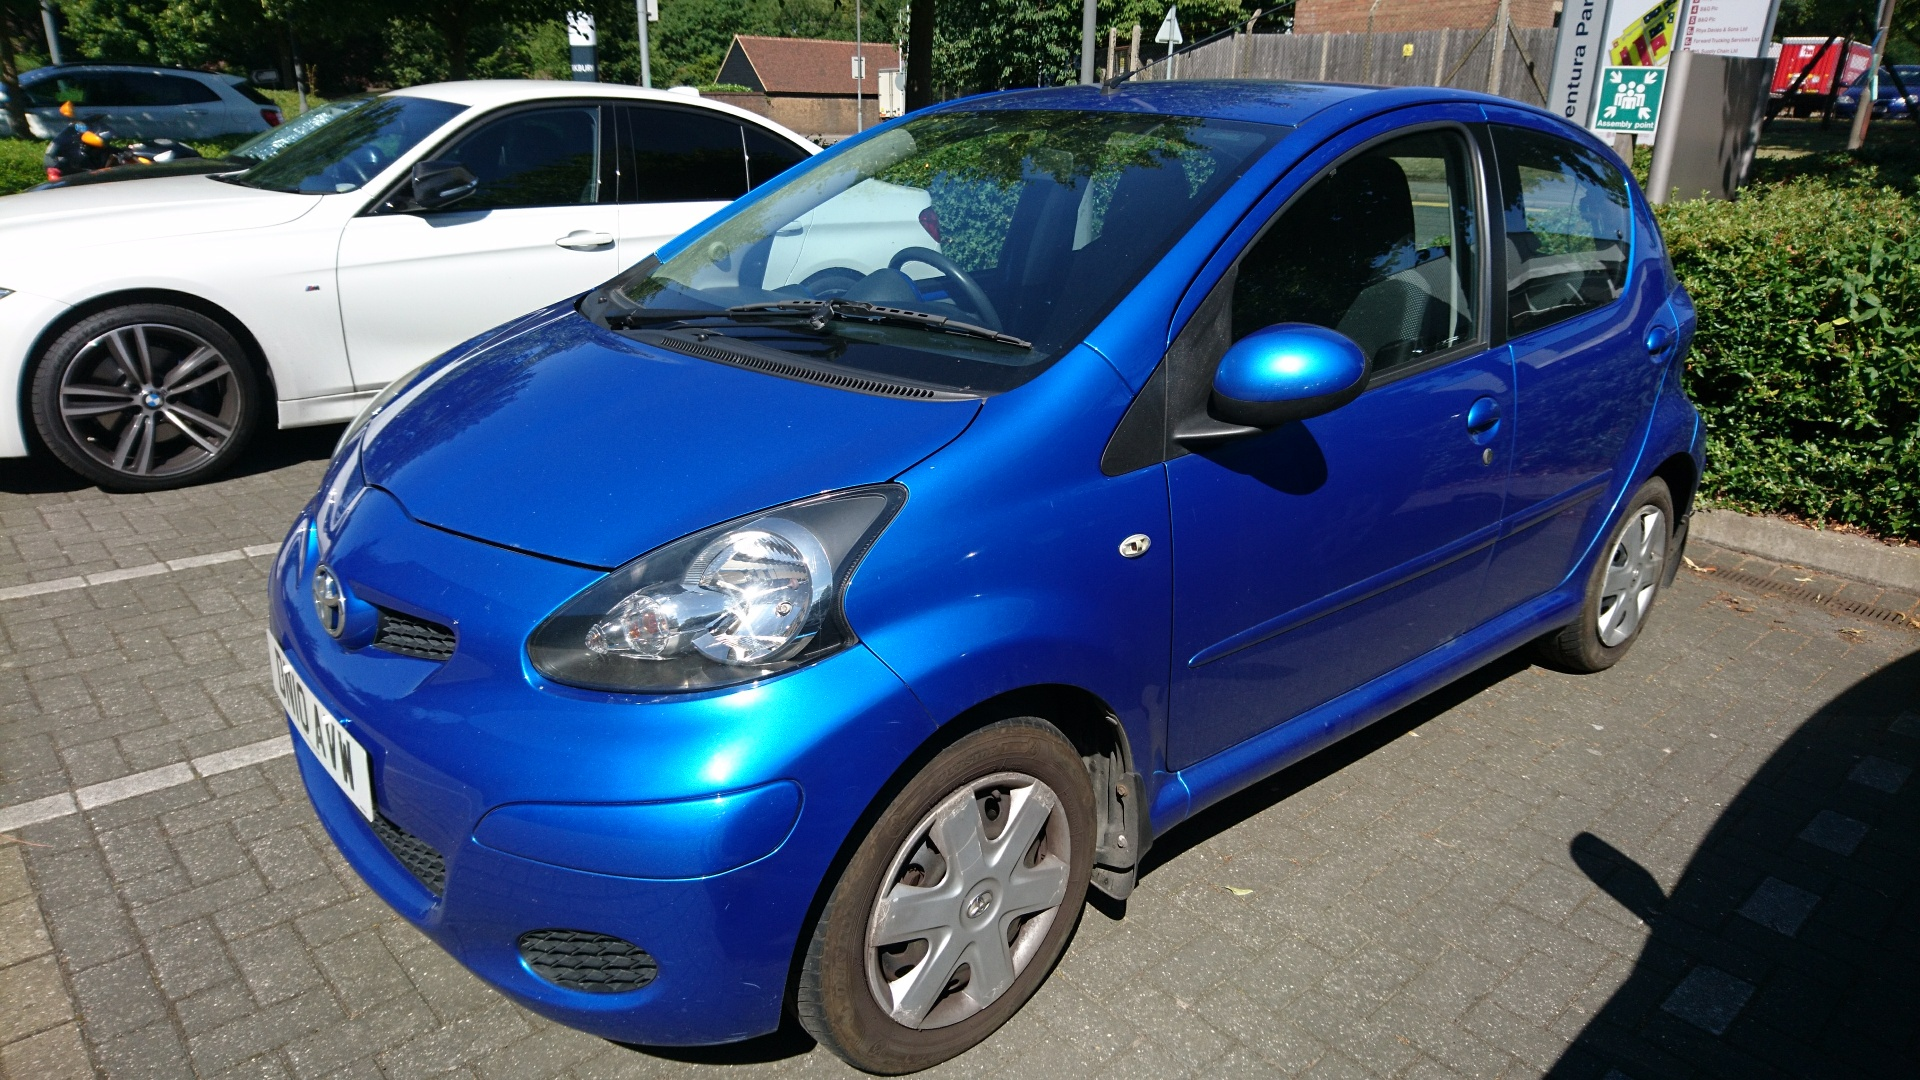 2010 toyota aygo blue 5dr for sale toyota owners club toyota forum. Black Bedroom Furniture Sets. Home Design Ideas